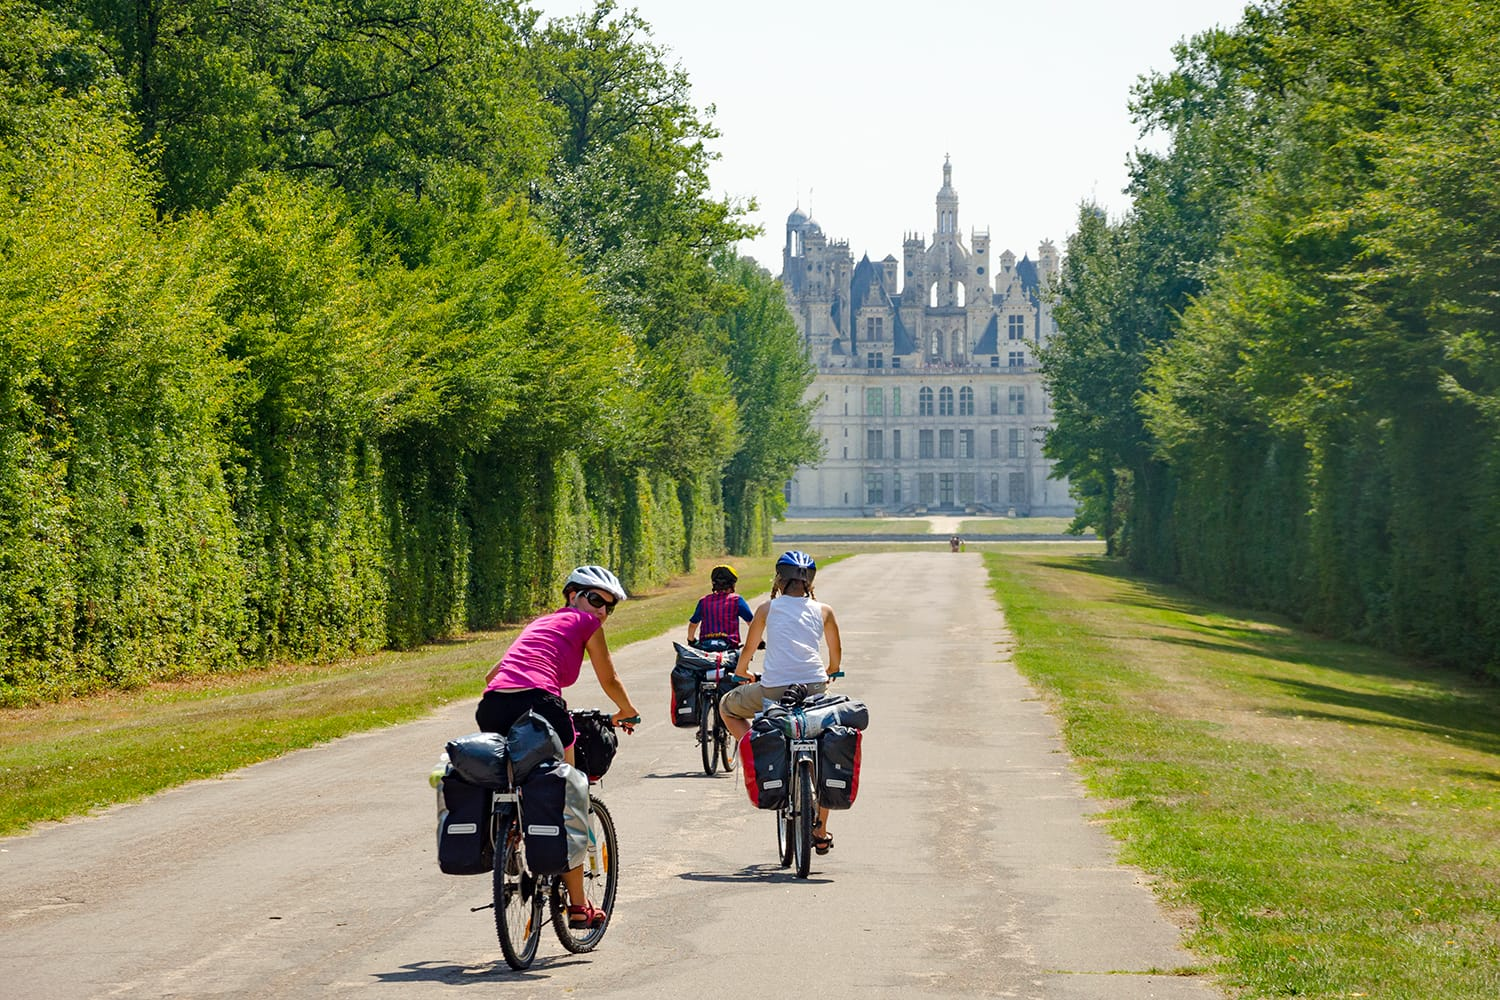 Bikers touring near Chambord castle in the Loire Valley, France